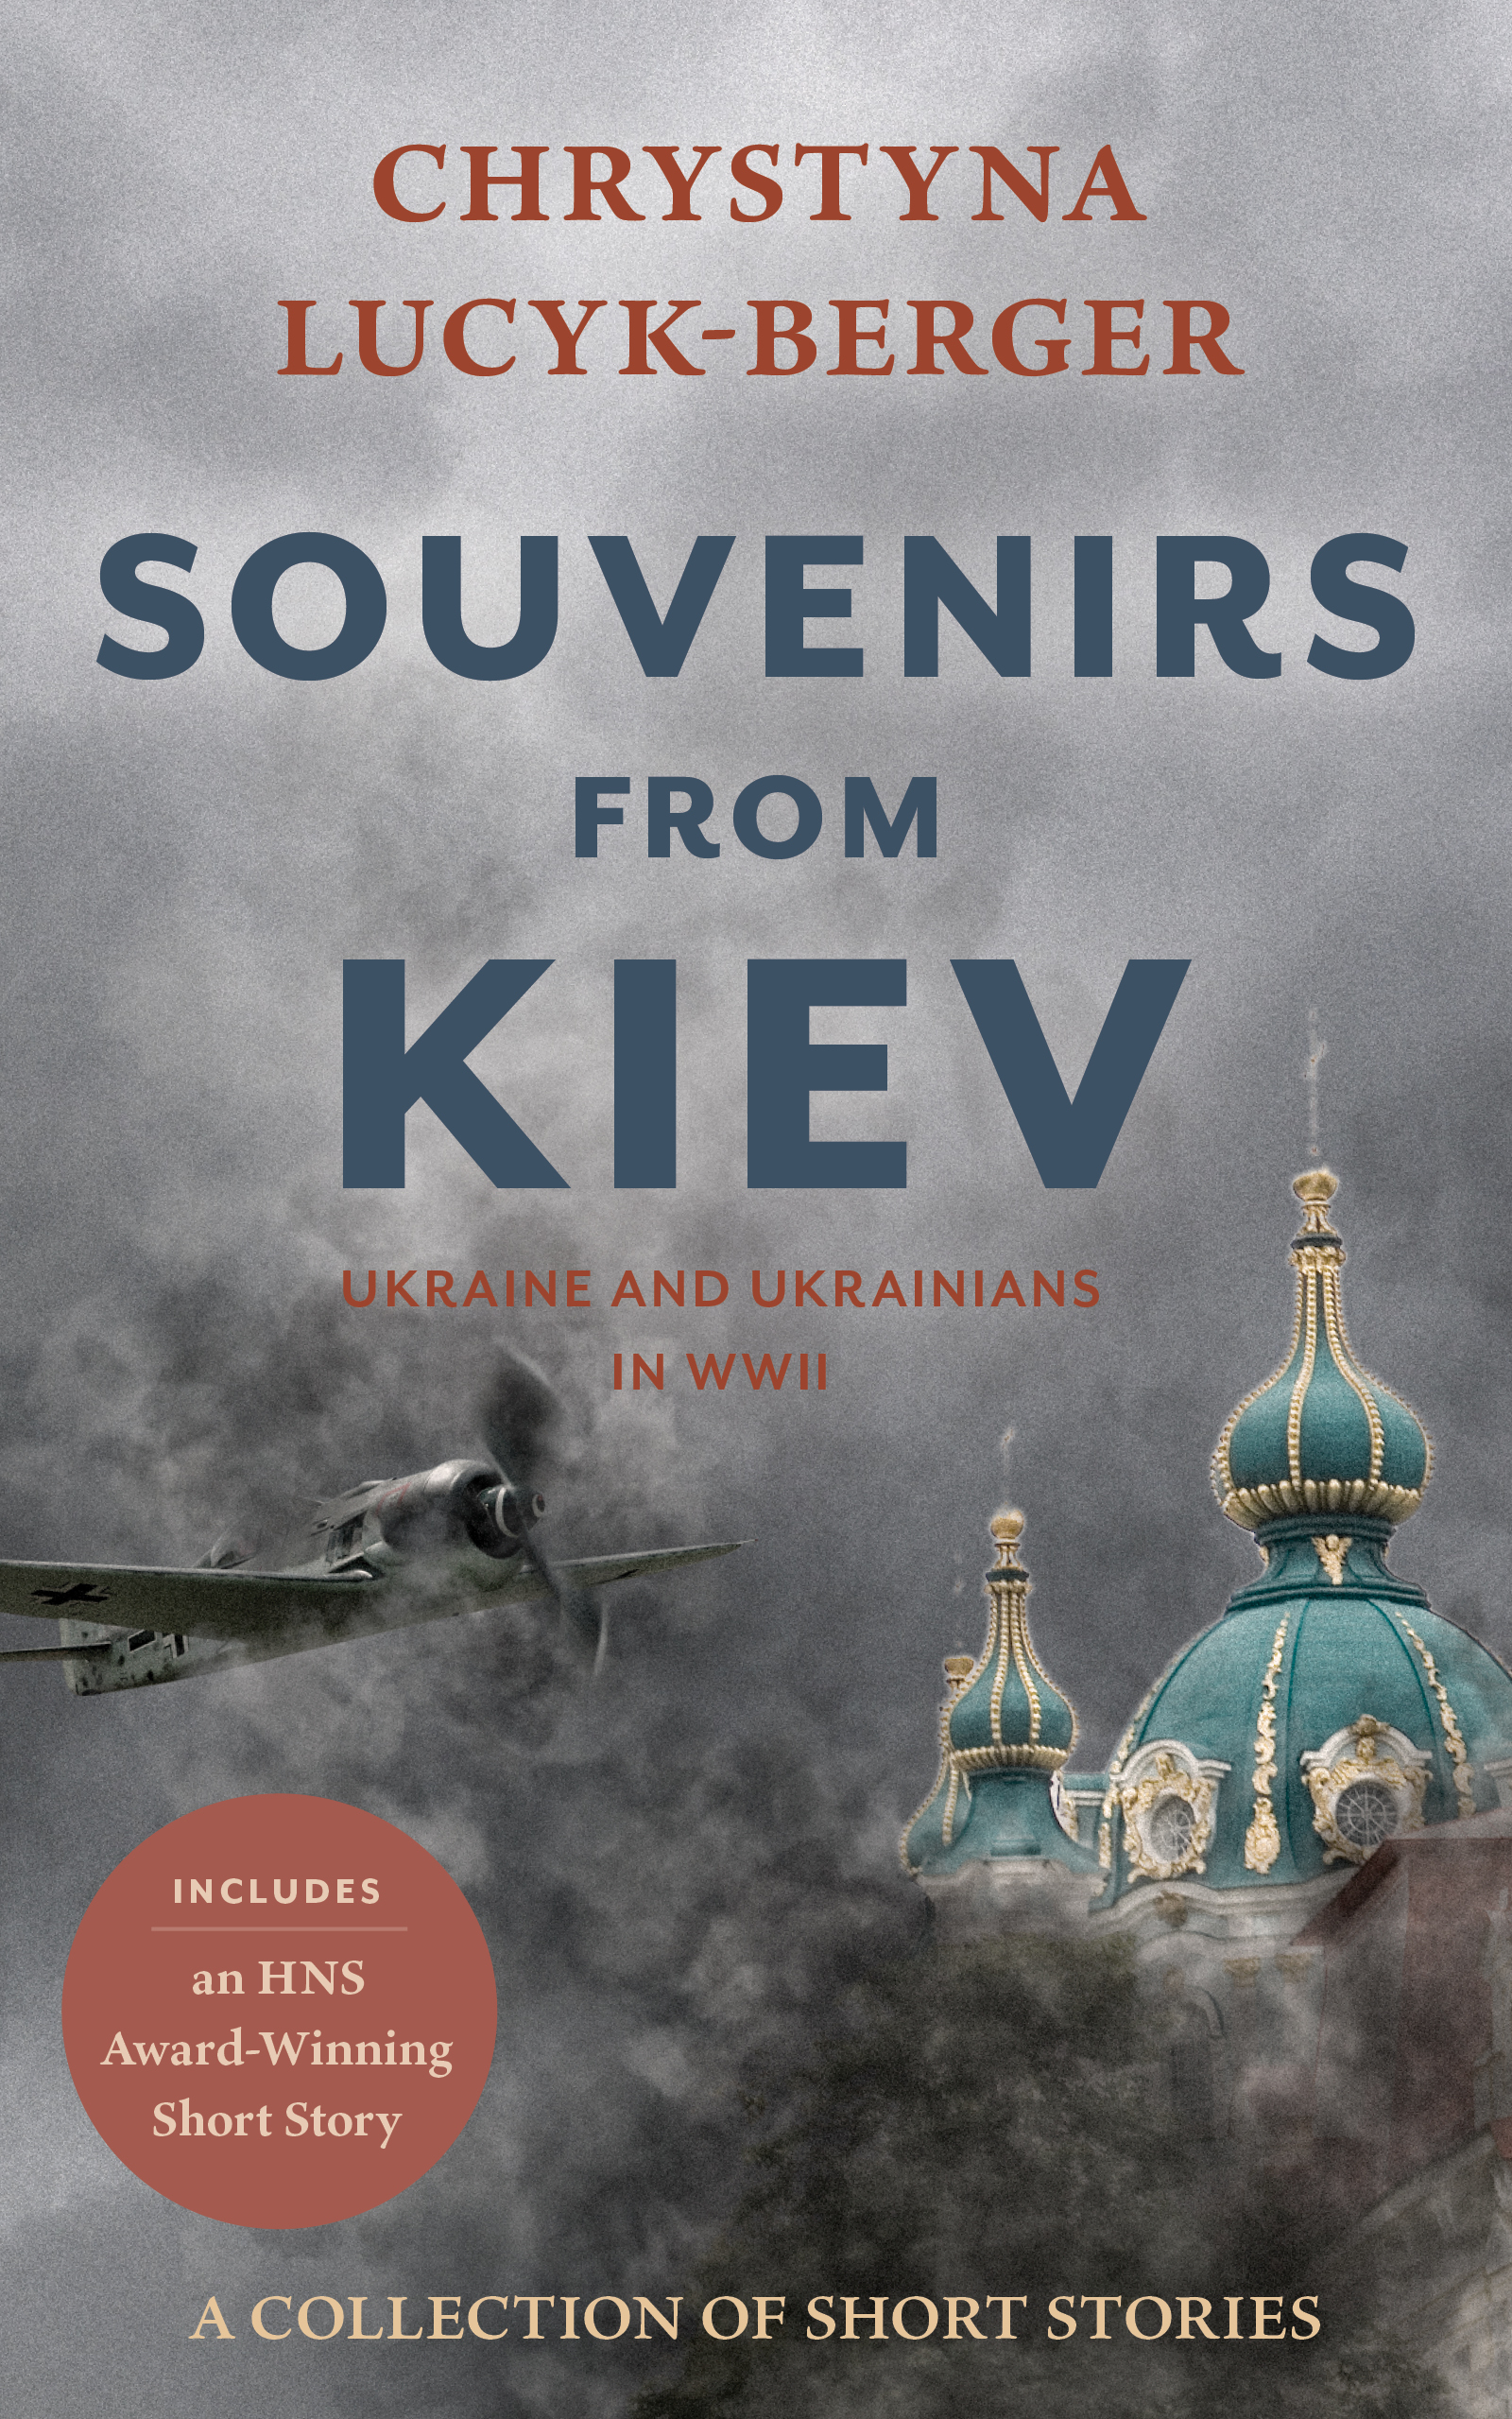 Souvenirs from Kiev: Ukraine and Ukrainians in WWII